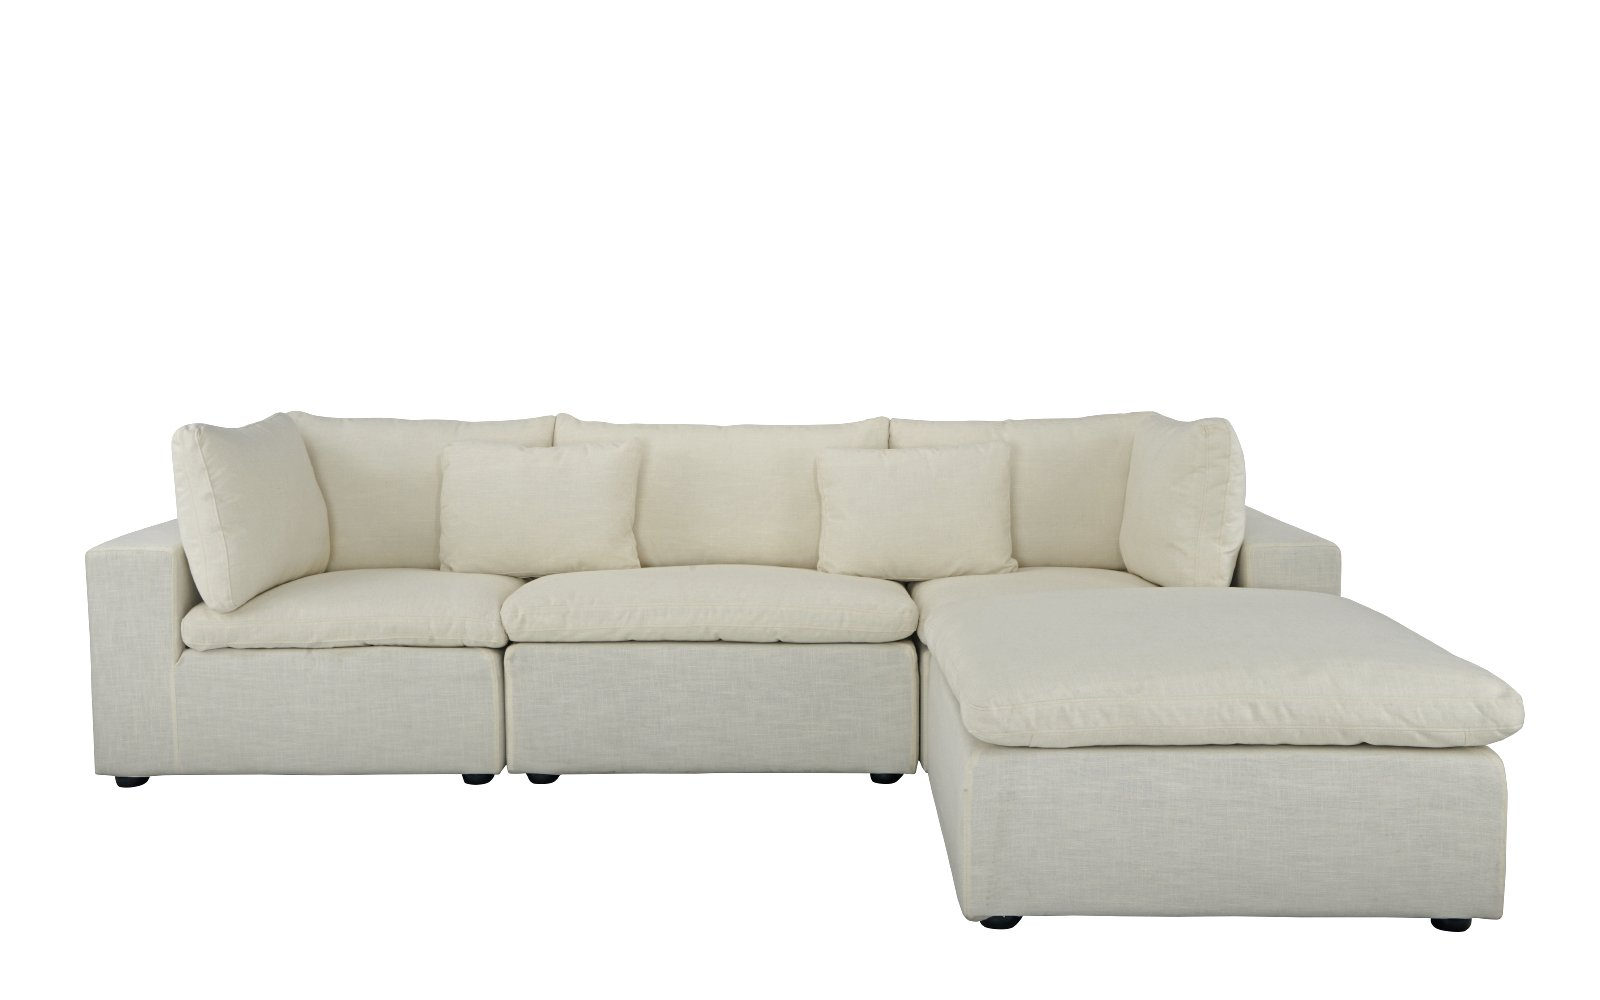 Fitz Contemporary Low Profile Lounge Sofa With Chaise Lounge